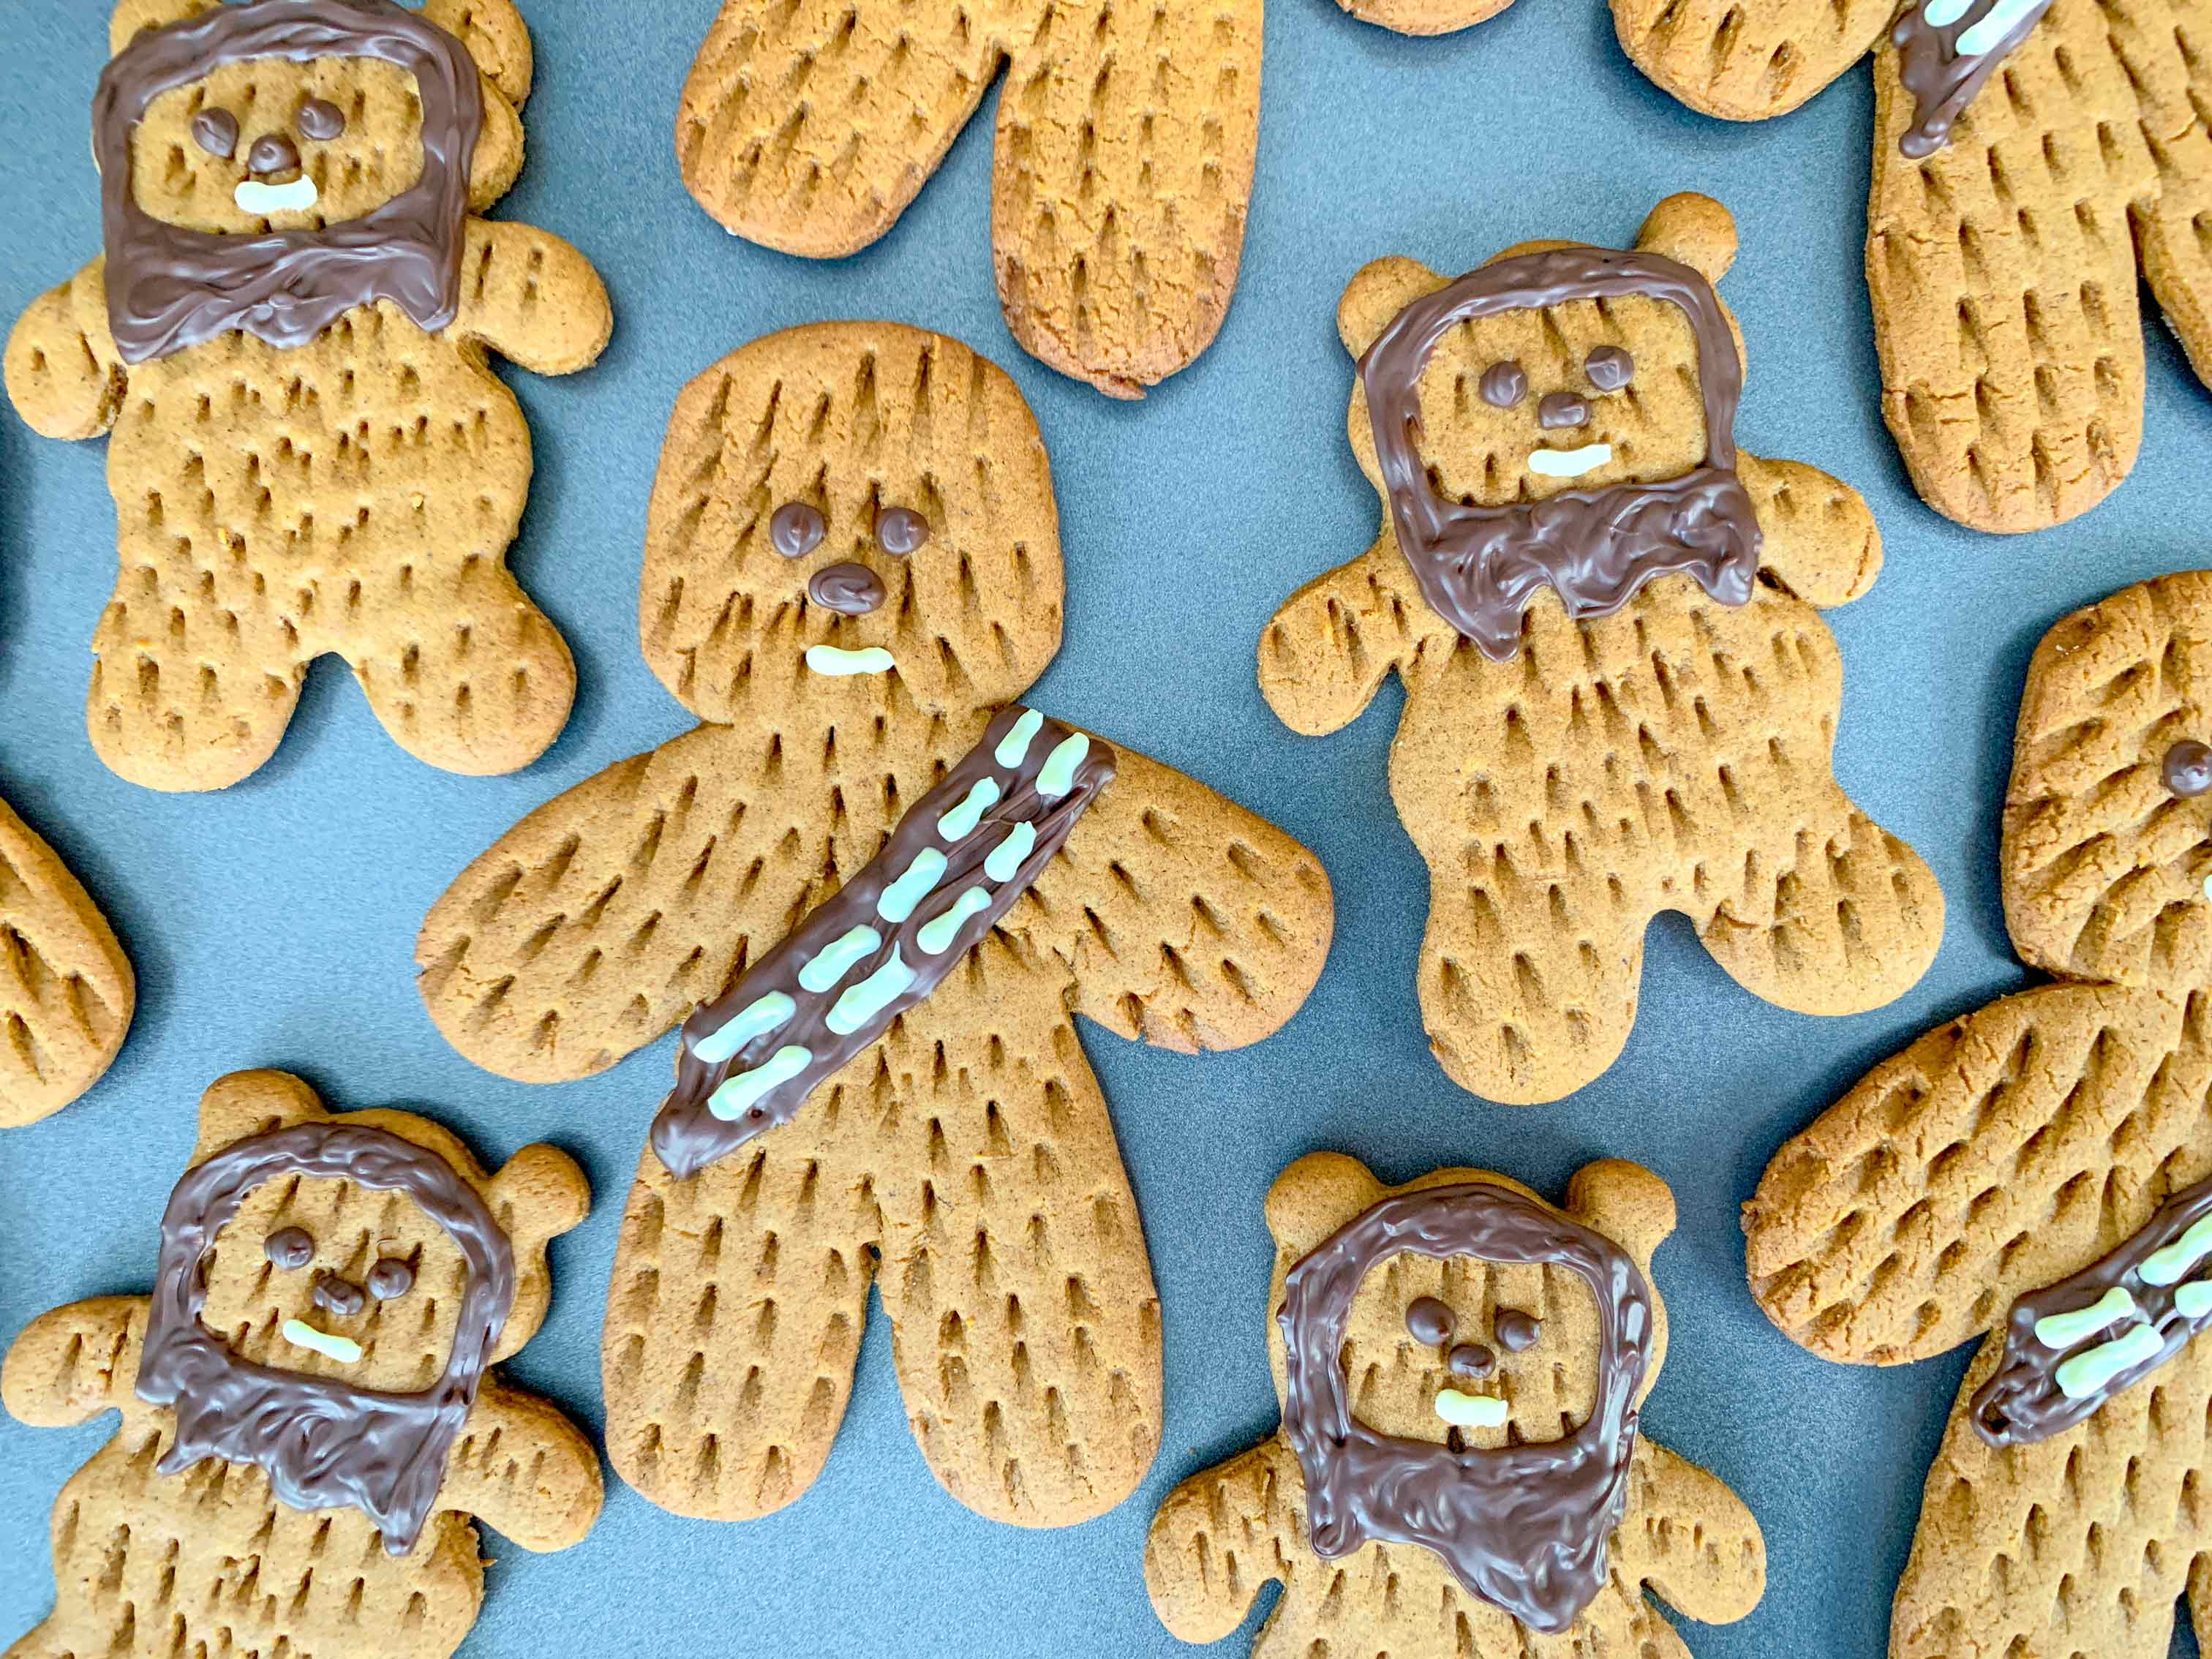 close up of decorated Chewbacca and Ewok cookie on baking tray